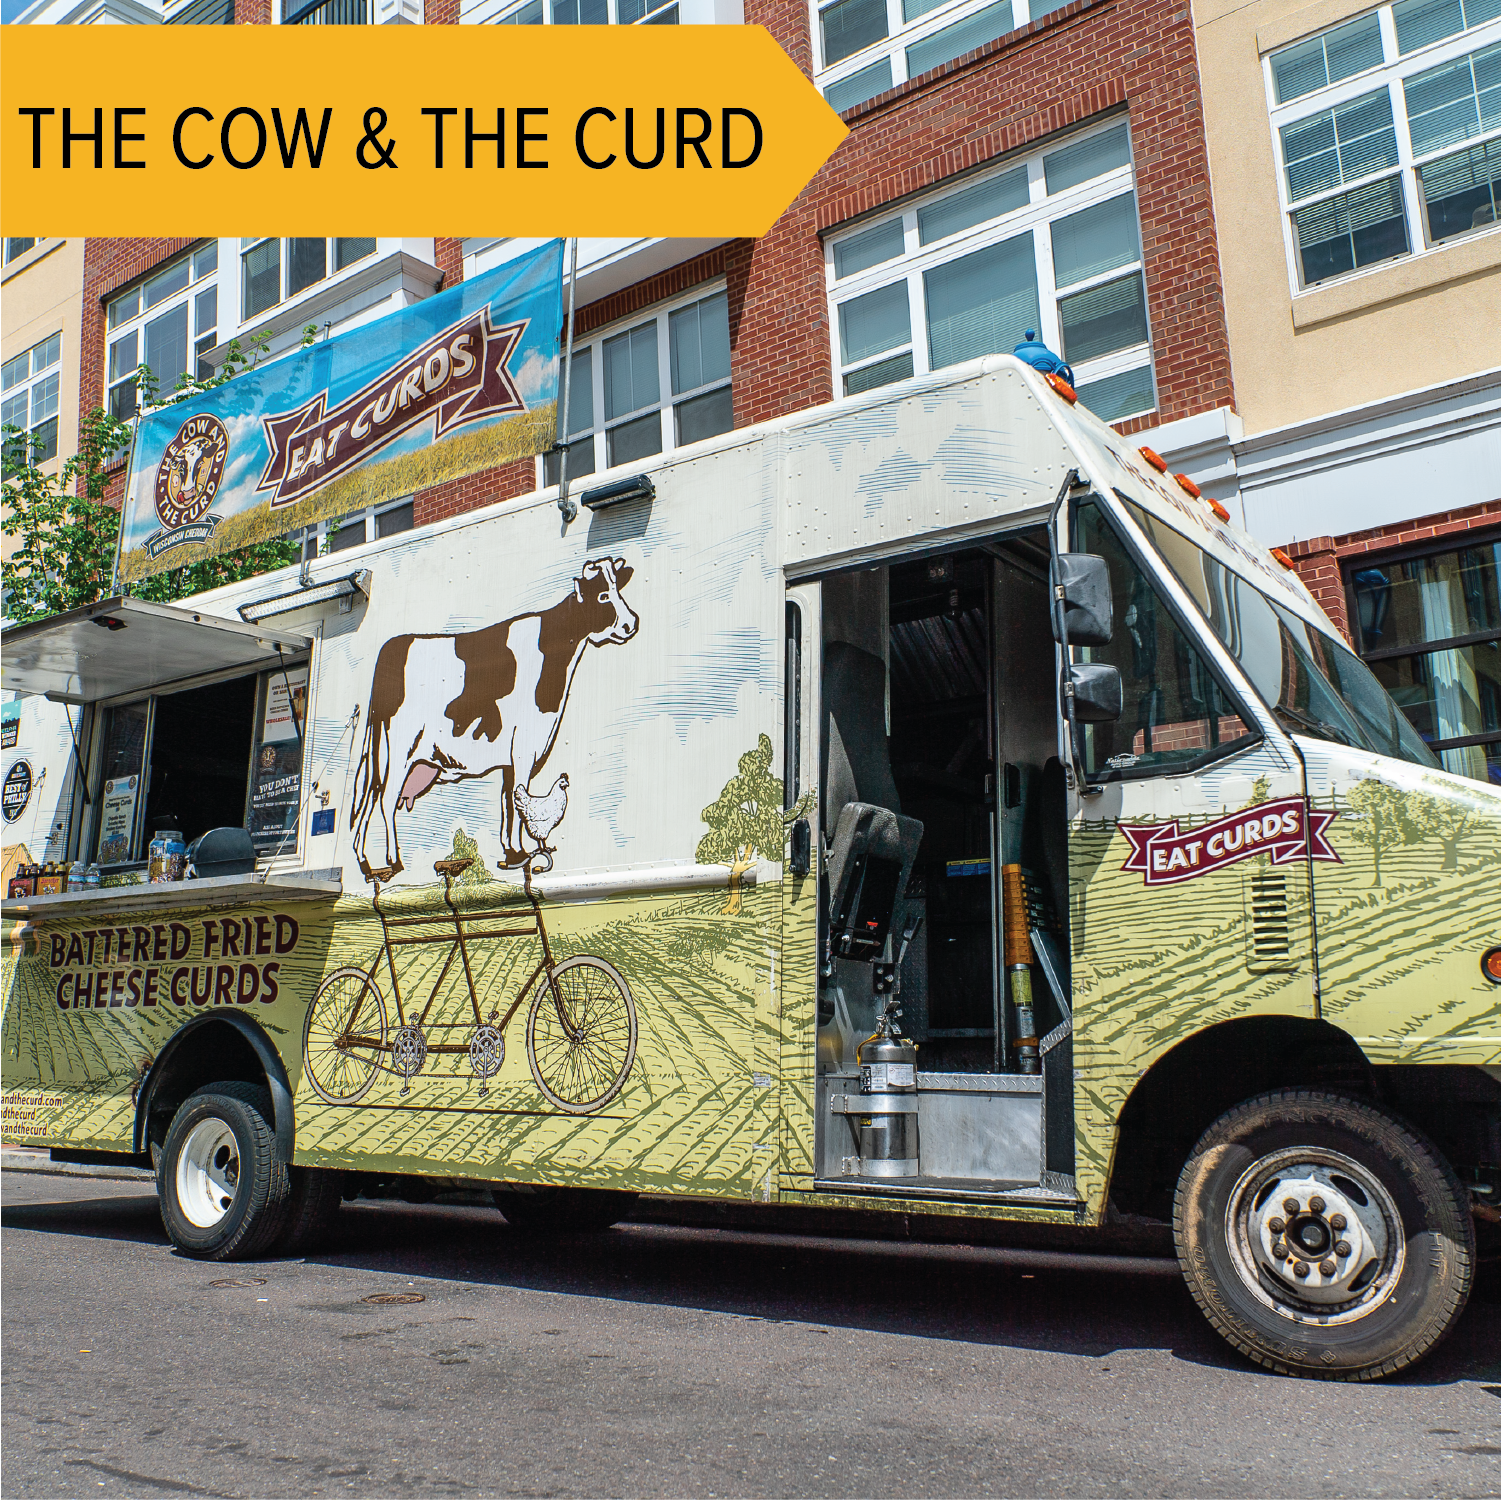 The Cow and the Curd   Cheesy Goodness! The Cow and the Curd will return for another year with their deep-fried cheese curds!